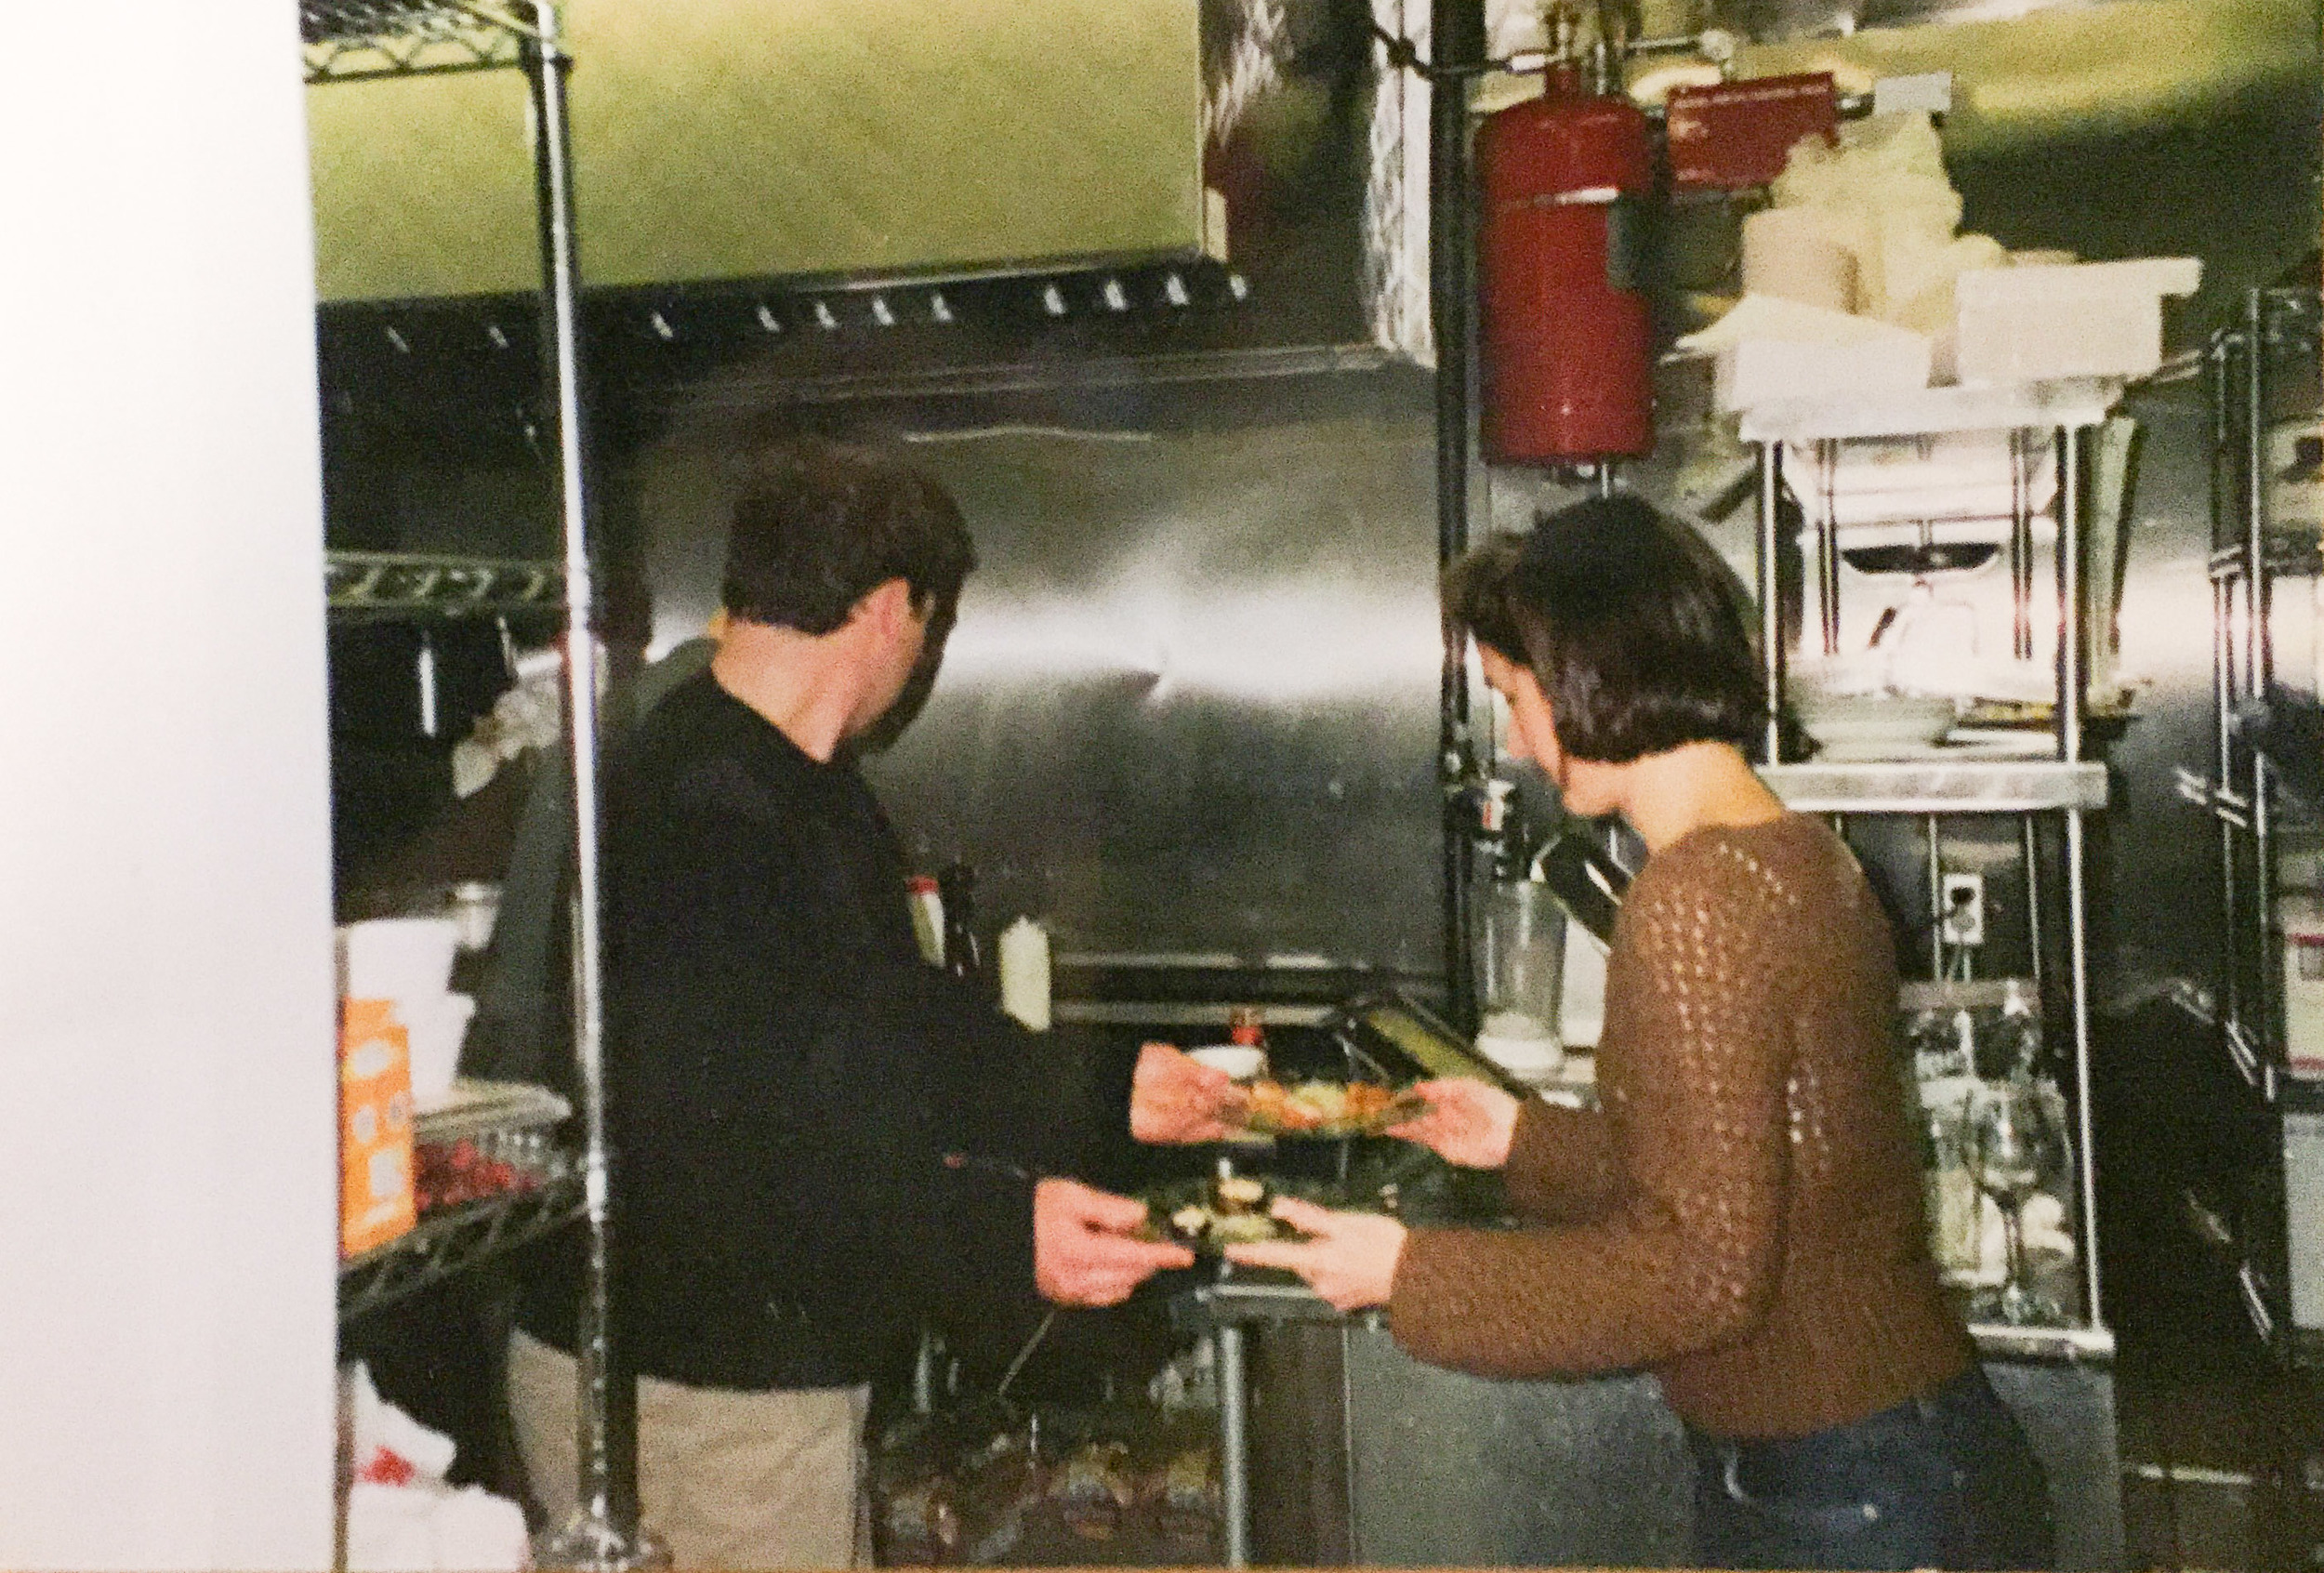 Stephen & Inez working in the kitchen together at On The Square's opening night.